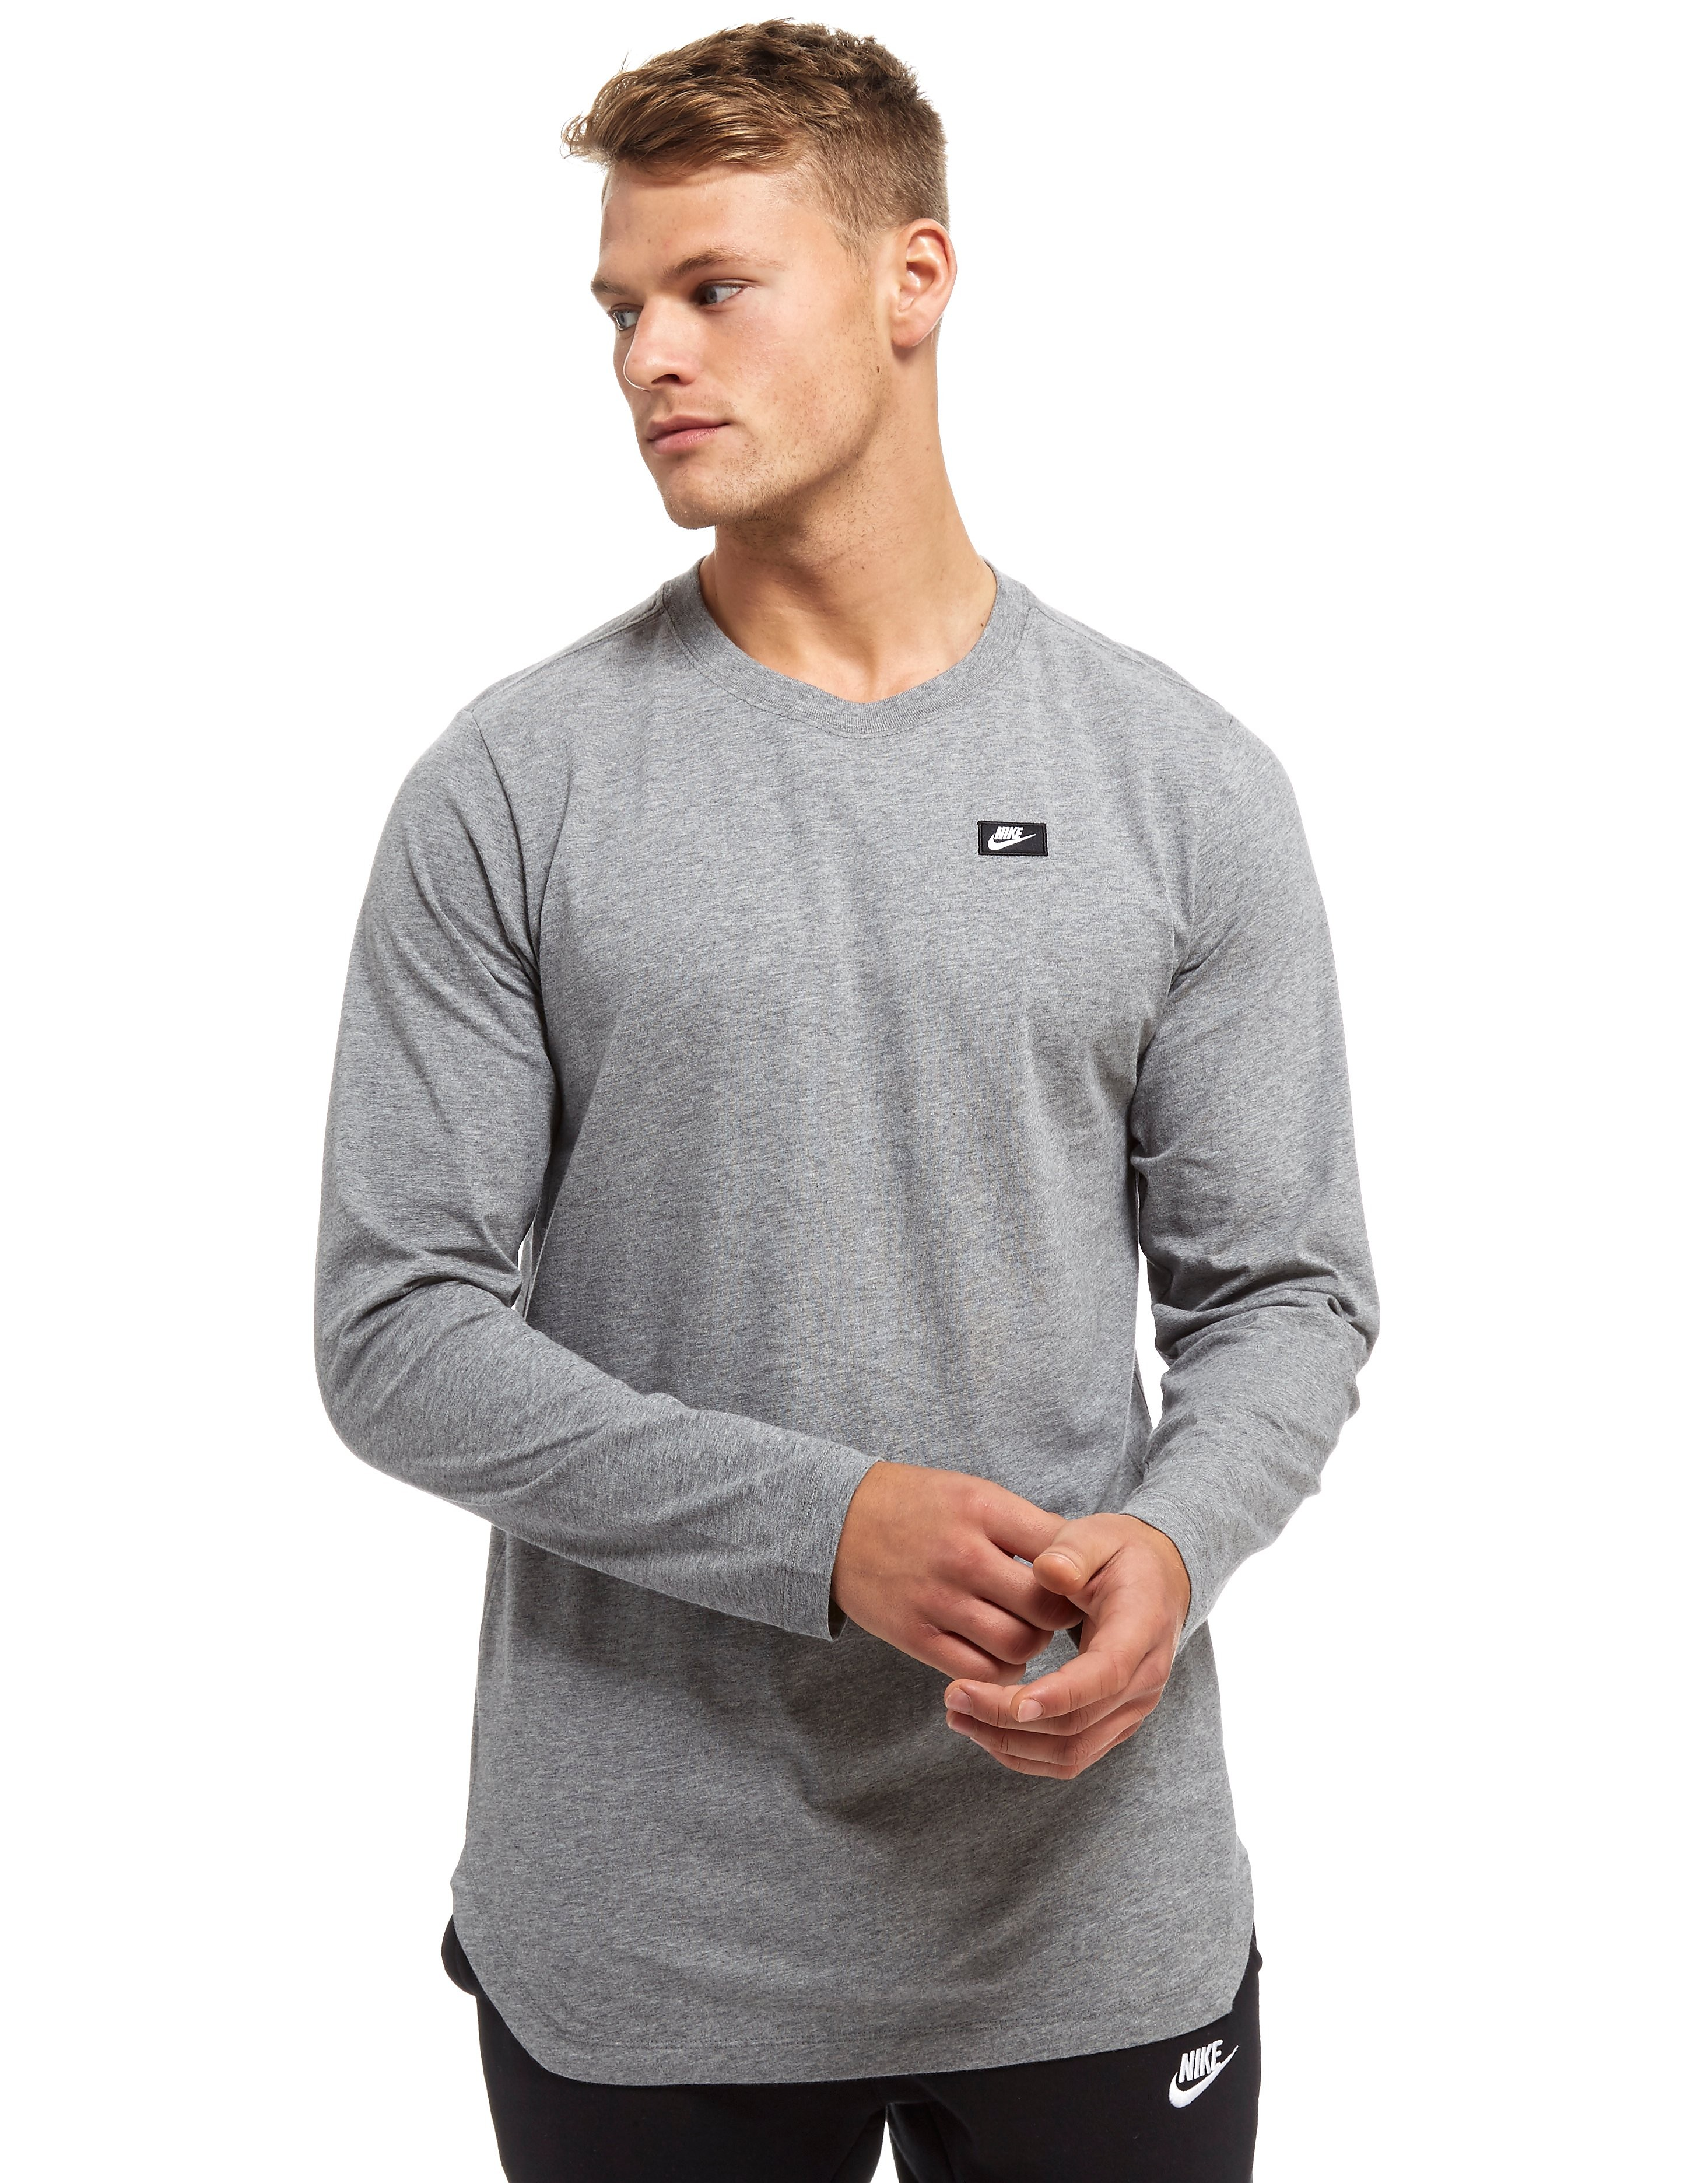 Nike Modern Long Sleeve T-Shirt